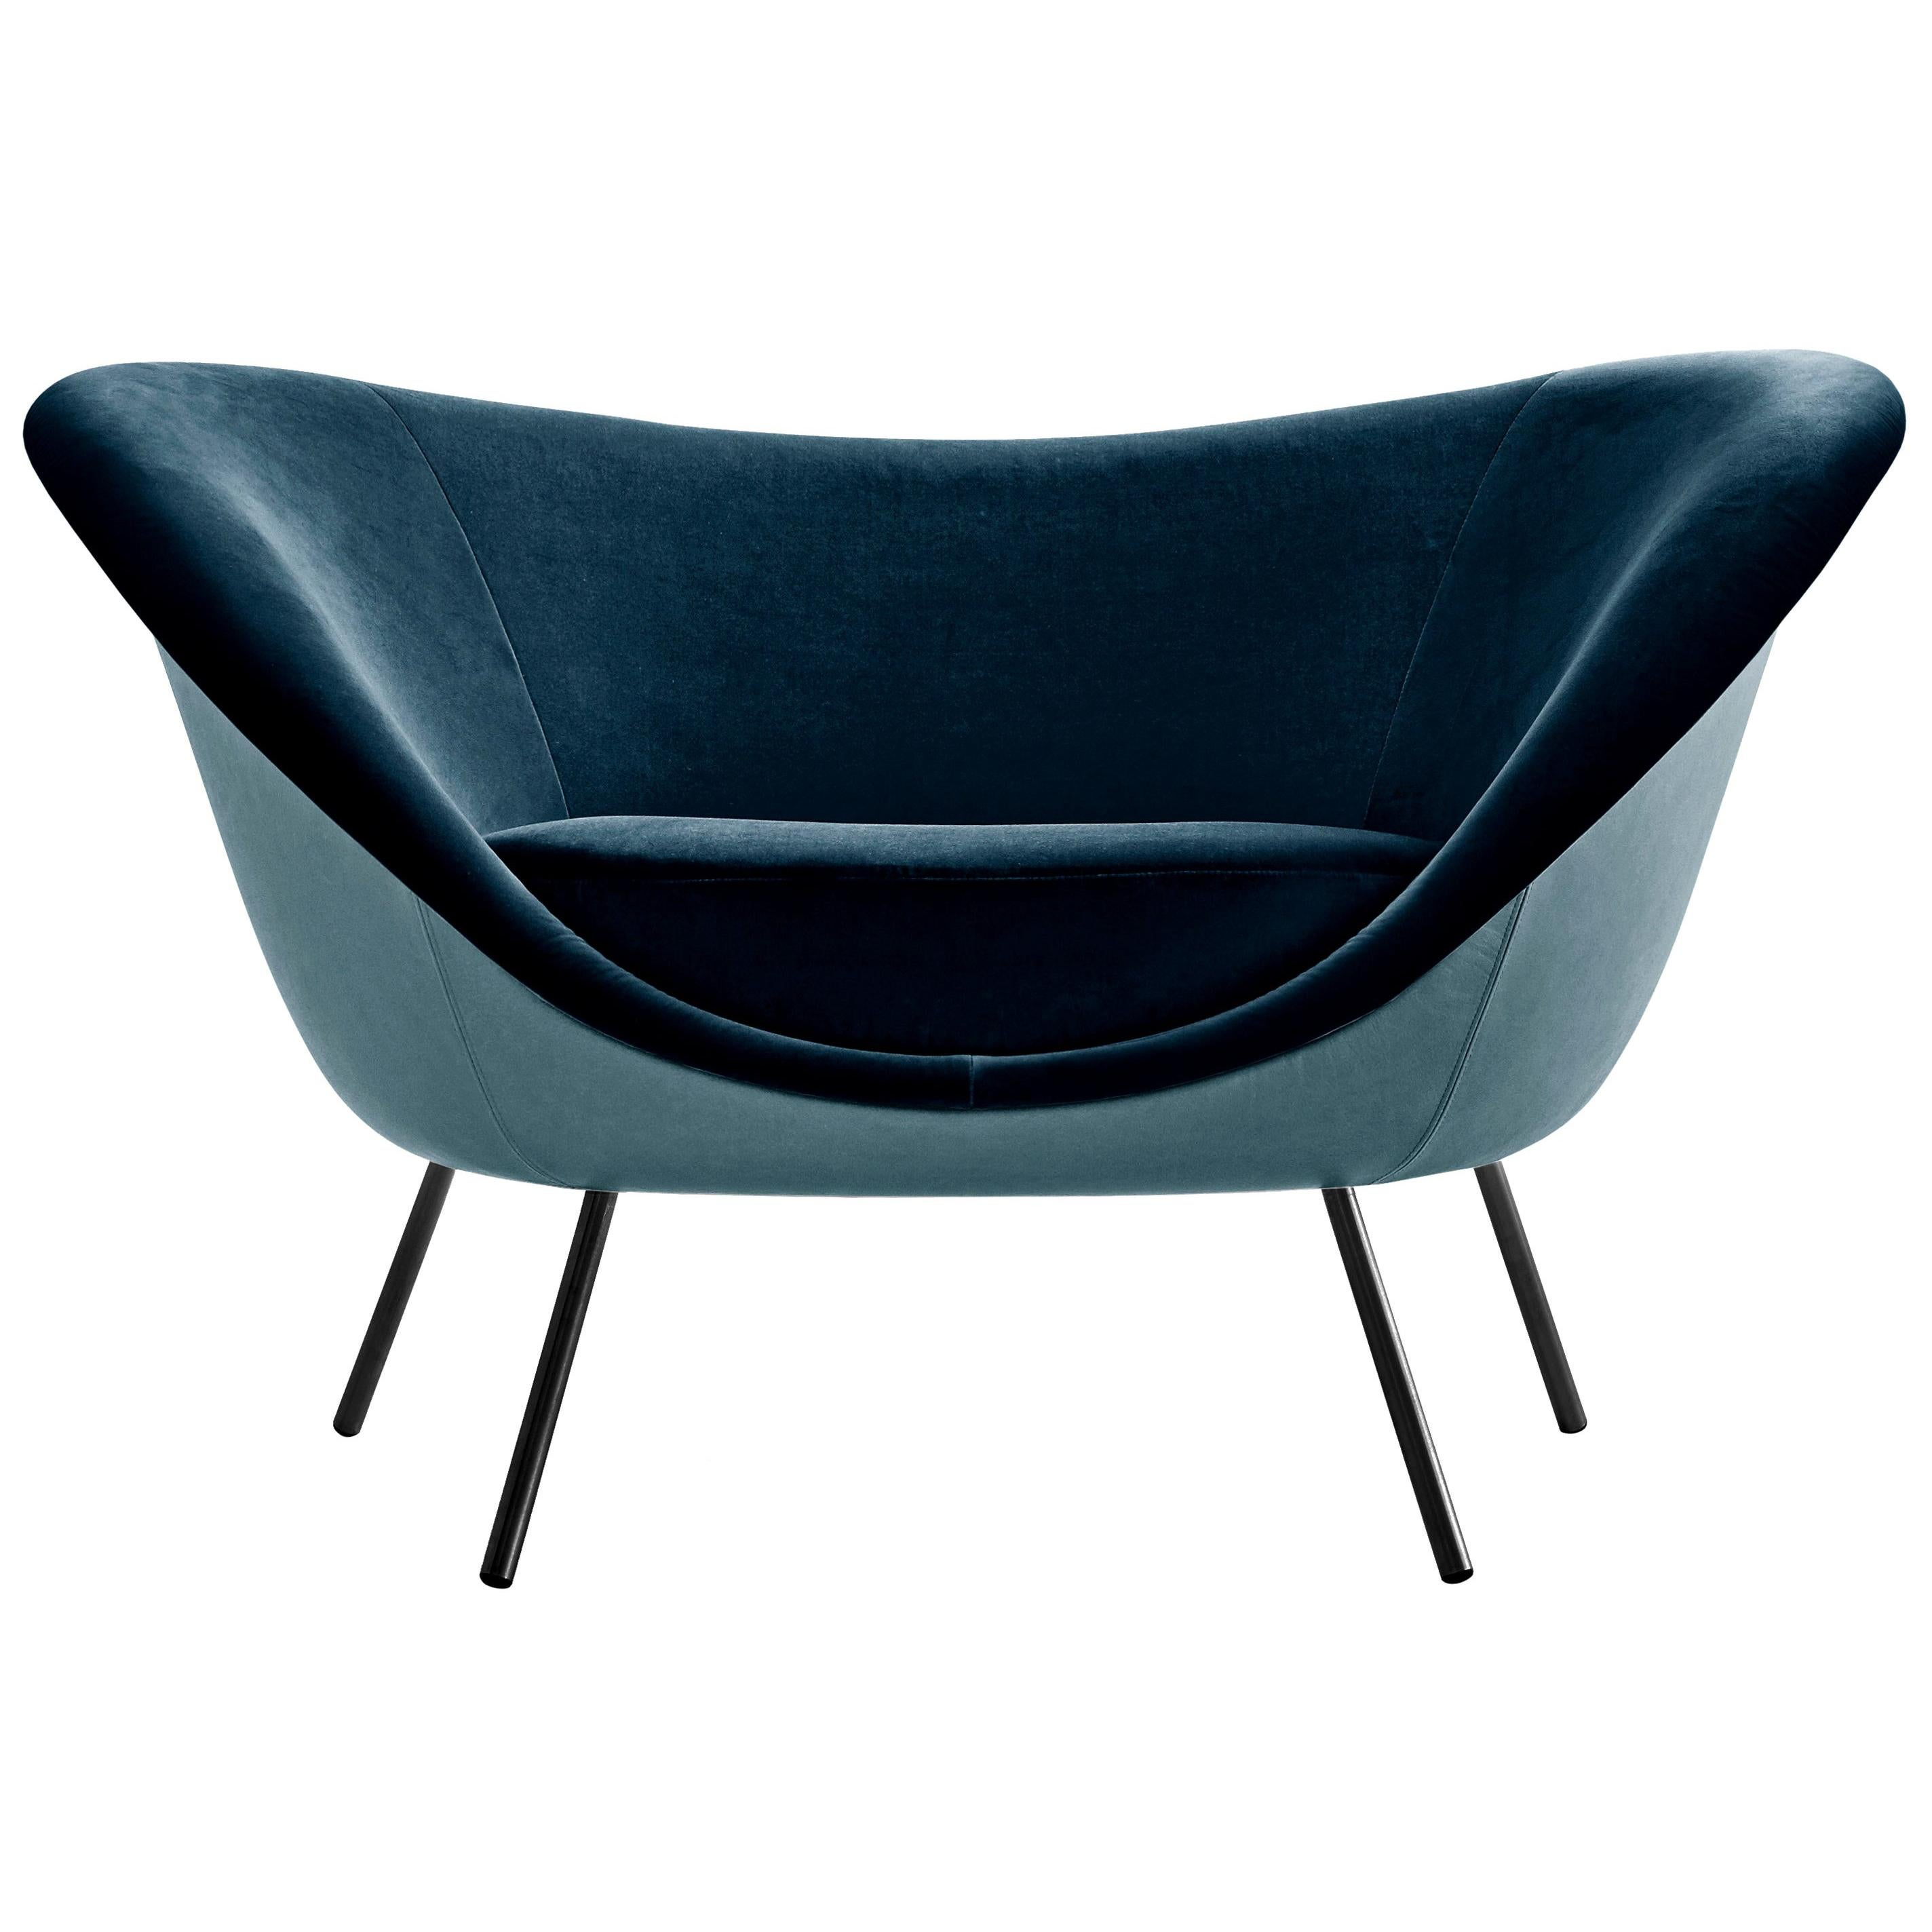 Molteni&C D.154.2 Armchair in Blue Leather by Gio Ponti